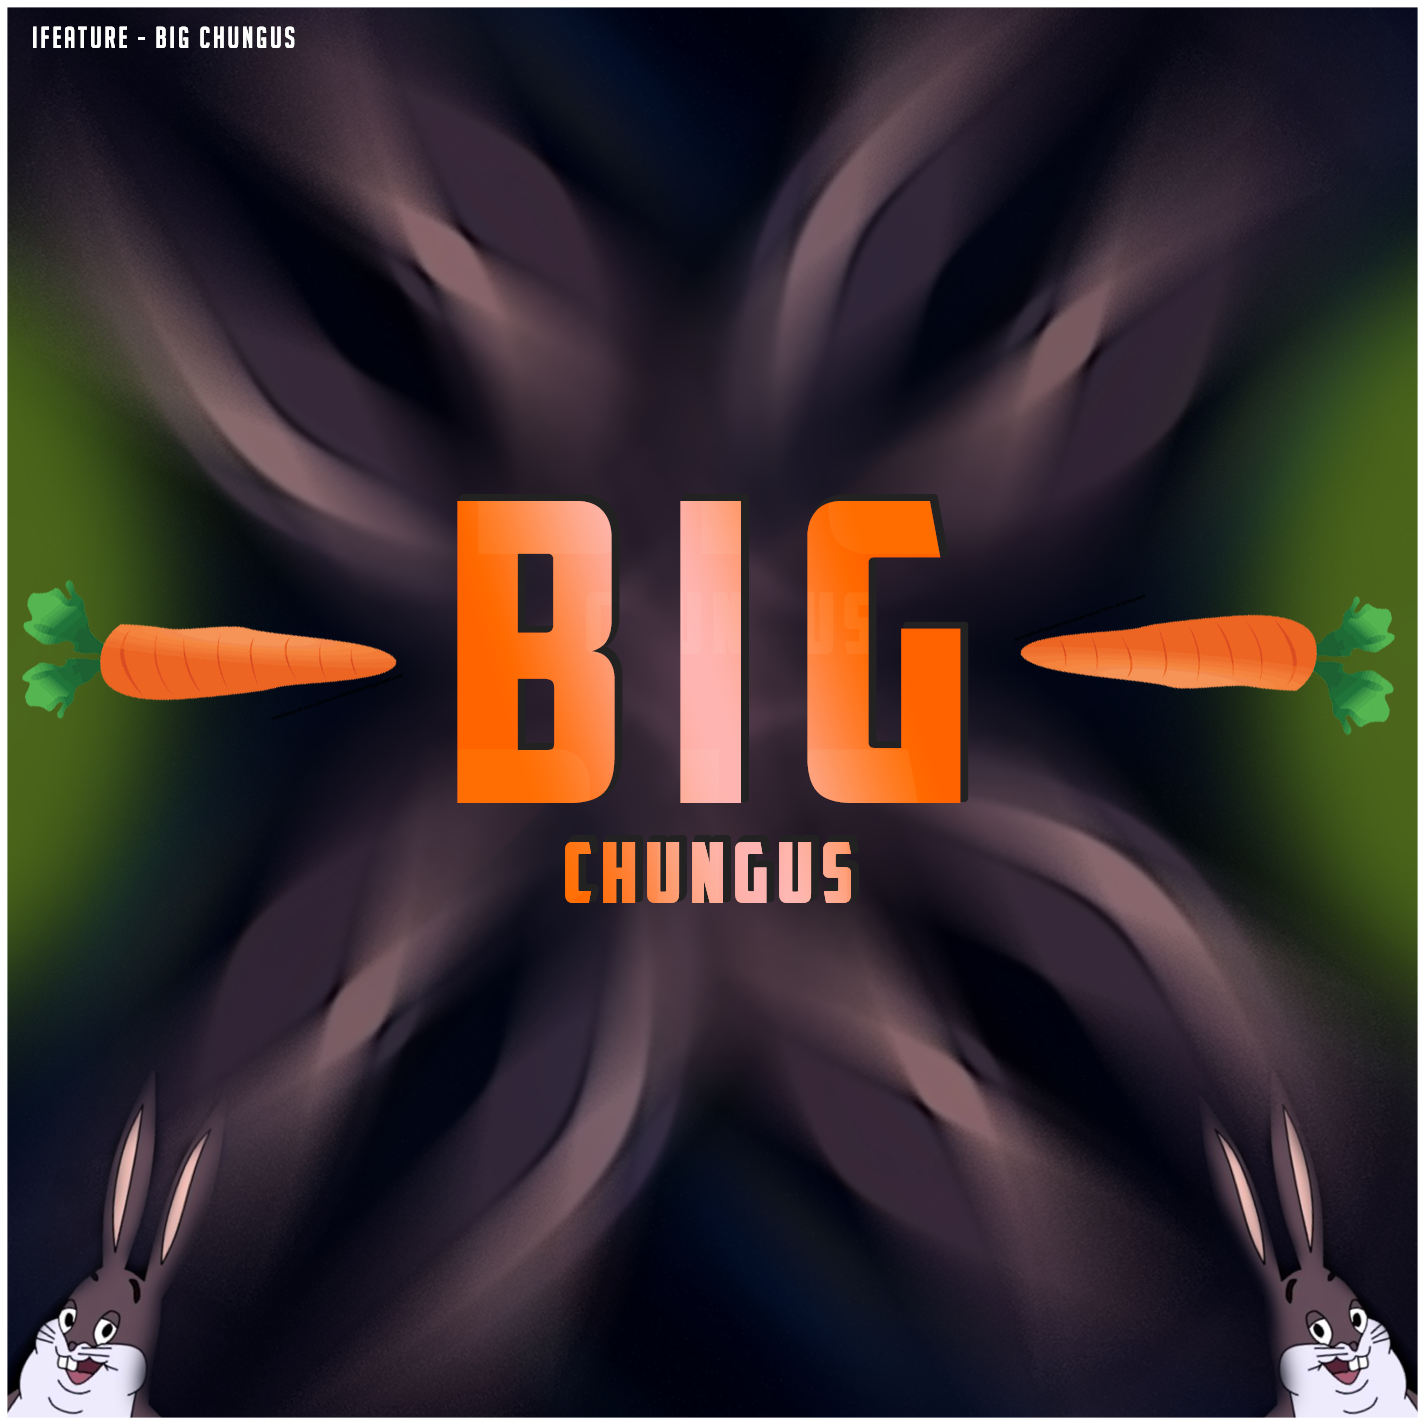 Big Chungus By Ifeature Free Download On Toneden